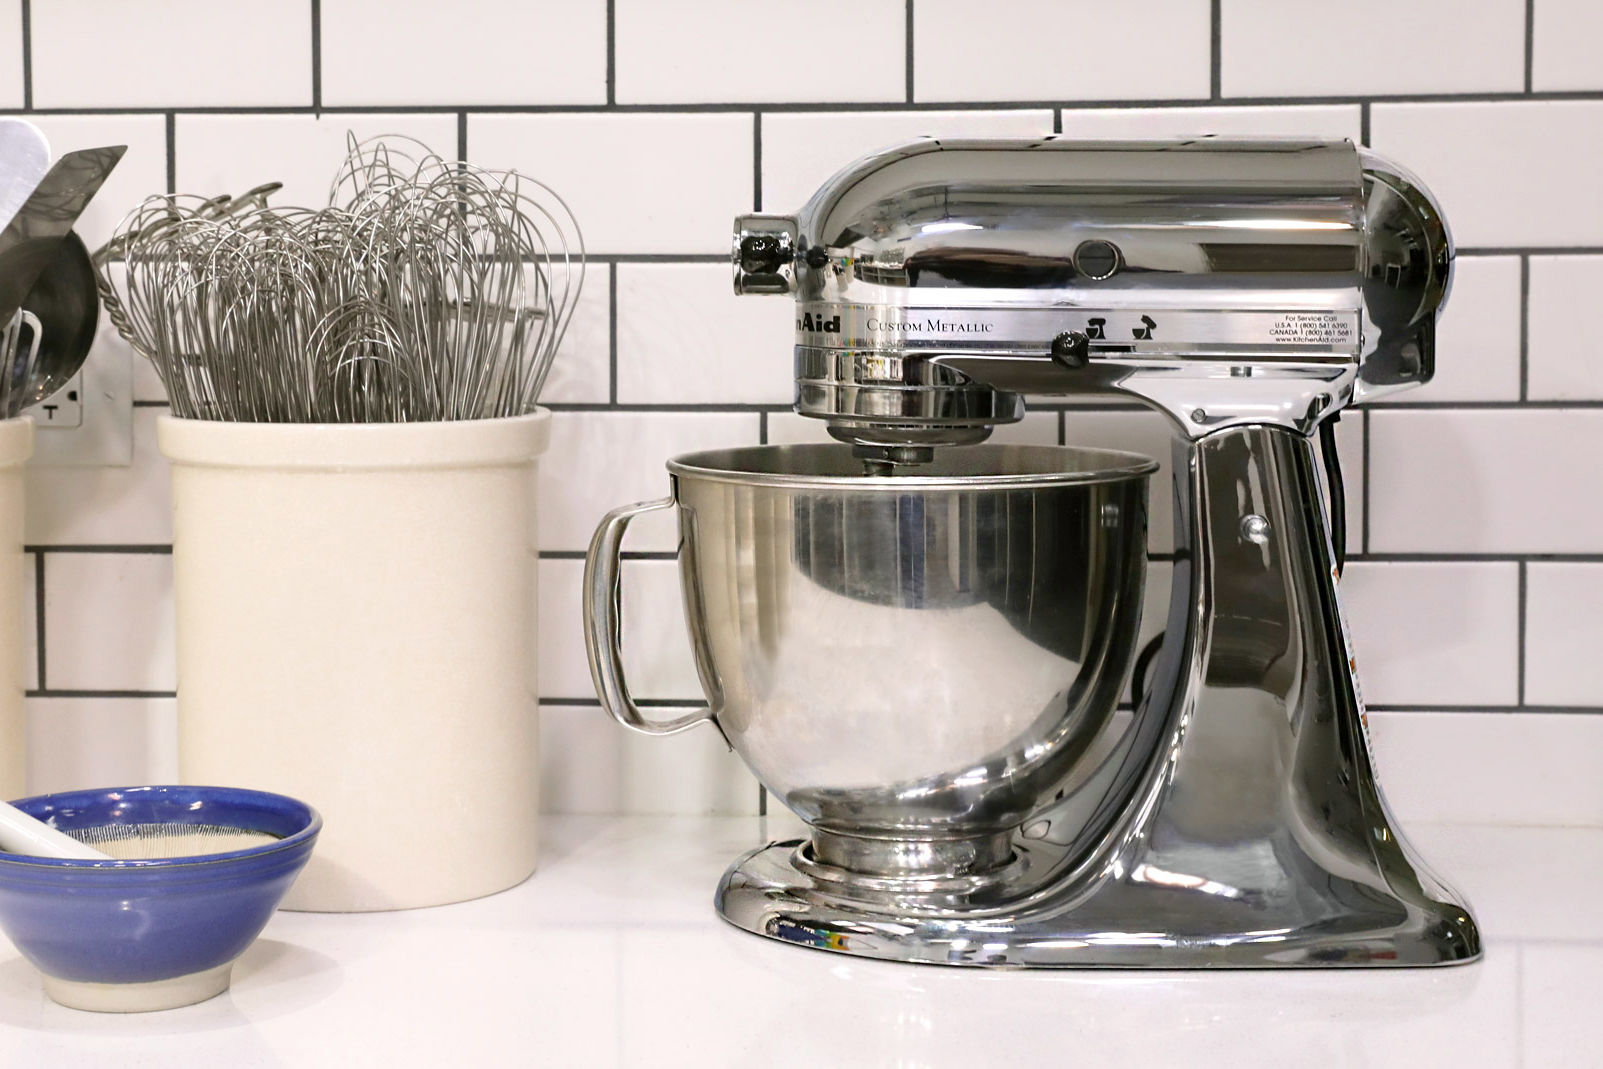 KitchenAid's Latest Food Processor Is Its Easiest to Clean Yet